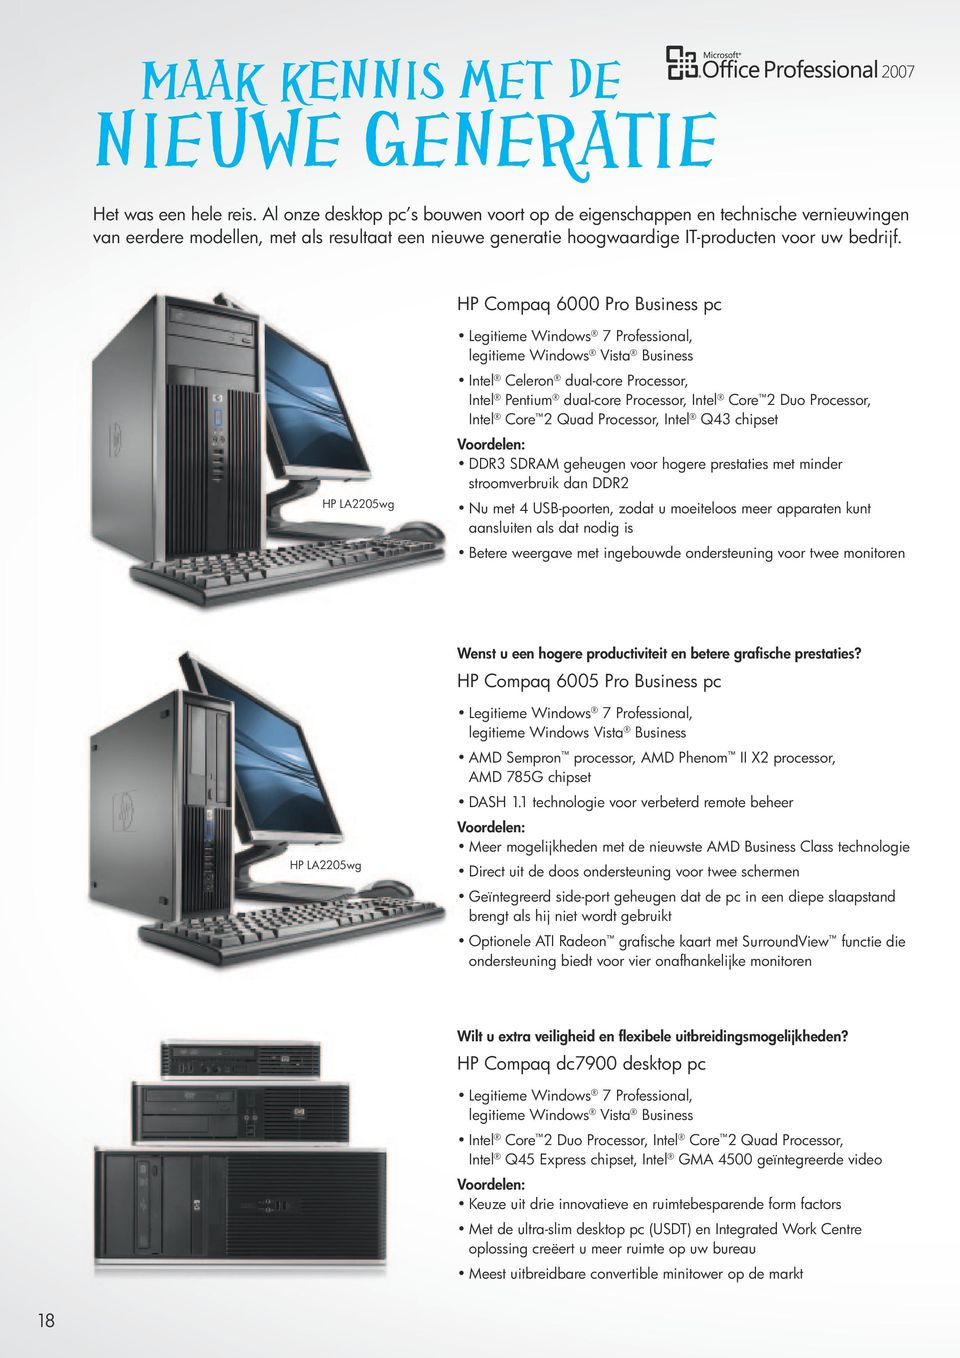 HP Compaq 6000 Pro Business pc HP LA2205wg Legitieme Windows 7 Professional, legitieme Windows Vista Business Intel Celeron dual-core Processor, Intel Pentium dual-core Processor, Intel Core 2 Duo